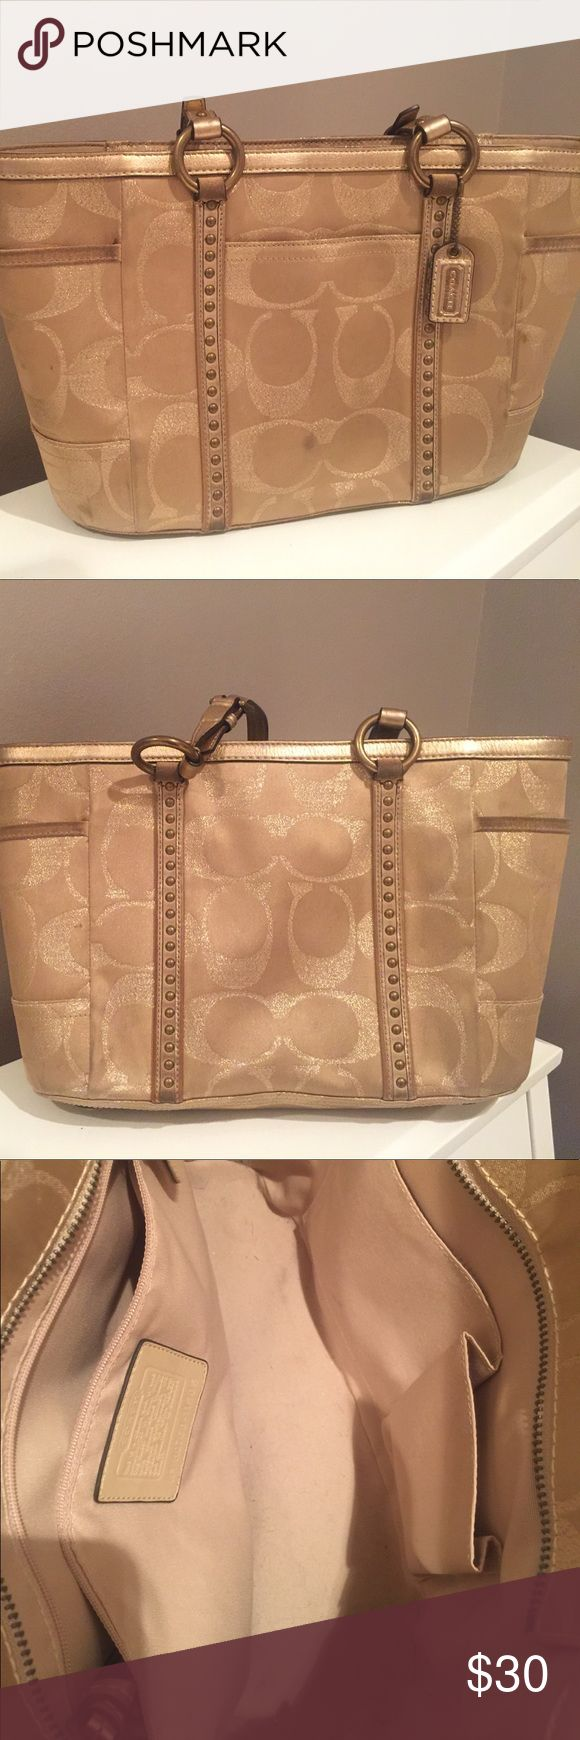 Authentic Gold Shimmer COACH Purse *USED* Authentic Gold Shimmer COACH Purse *USED* -everyday use stains - needs to be cleaned with fabric cleaner - inside of purse LIKE NEW Coach Bags Shoulder Bags